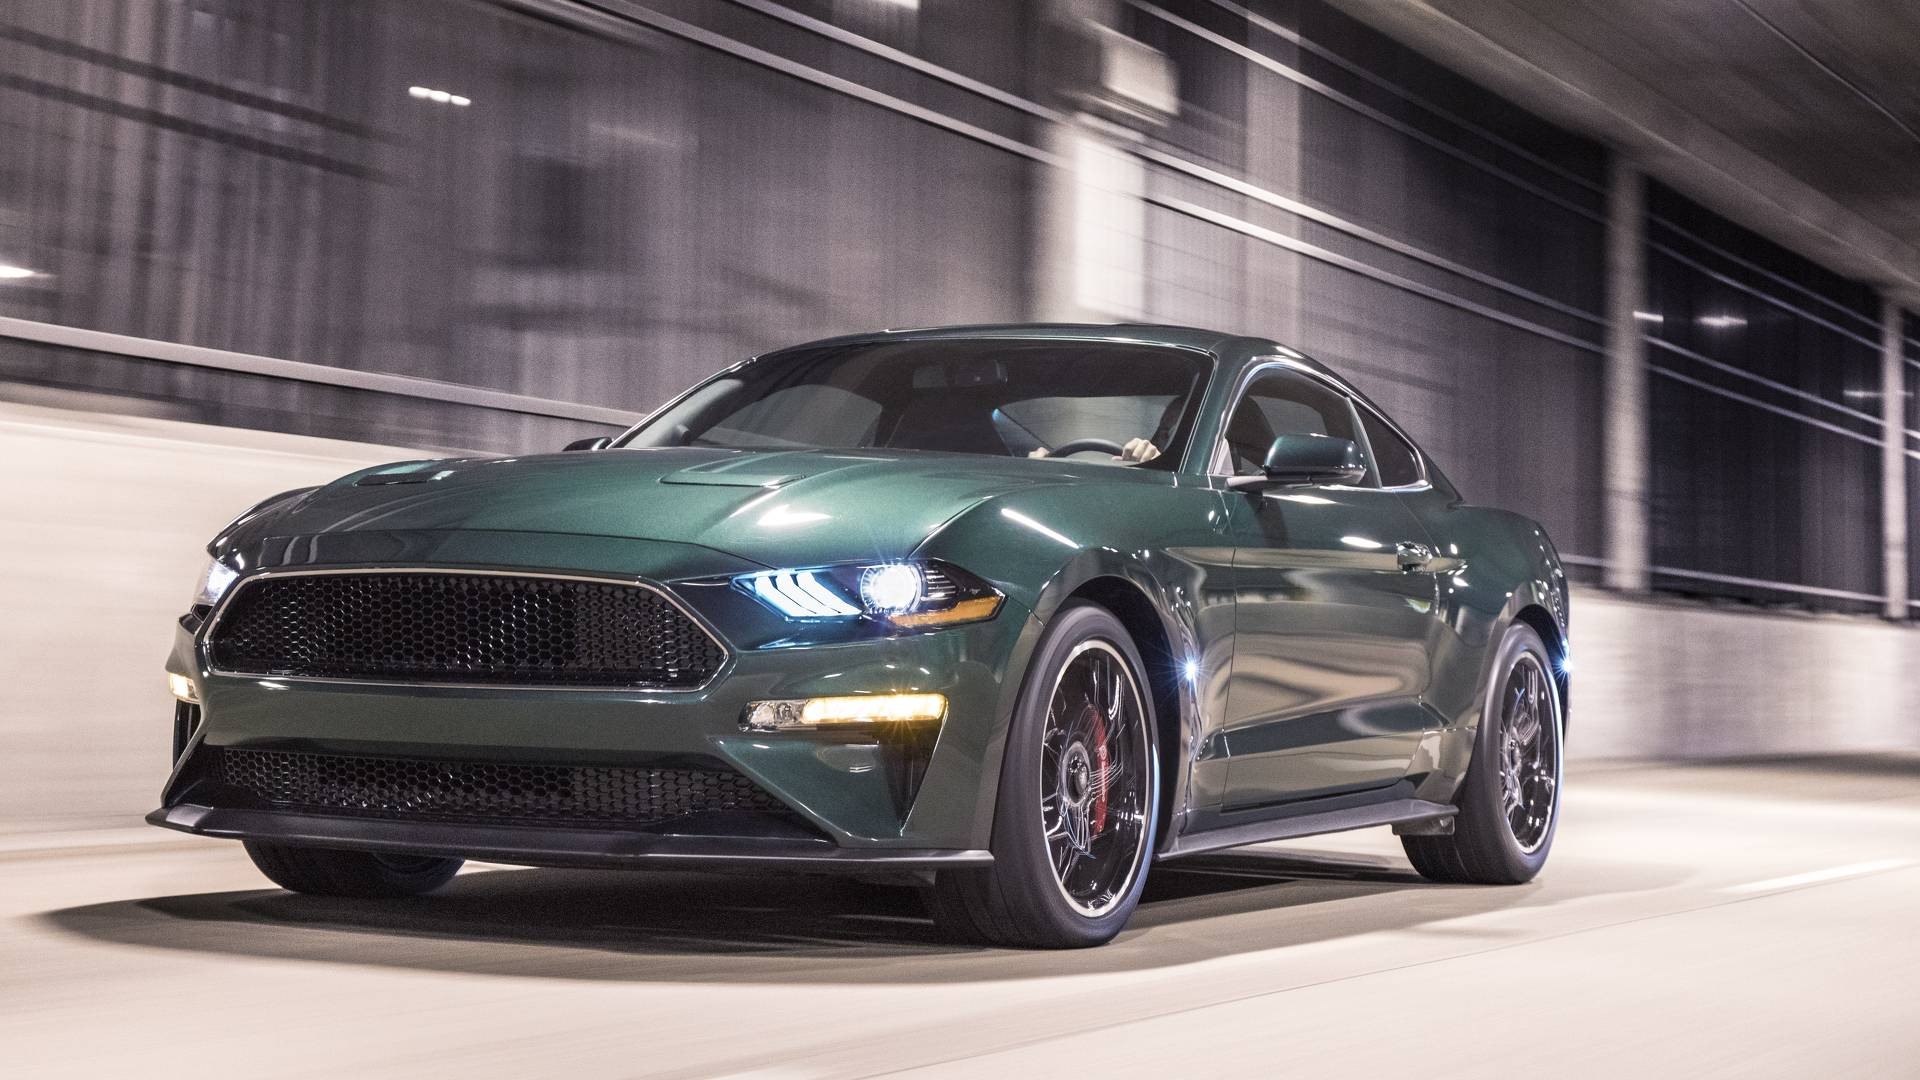 Lee Iacocca Mustang >> Ford Mustang Special Edition For Sale Includes Lunch With Lee